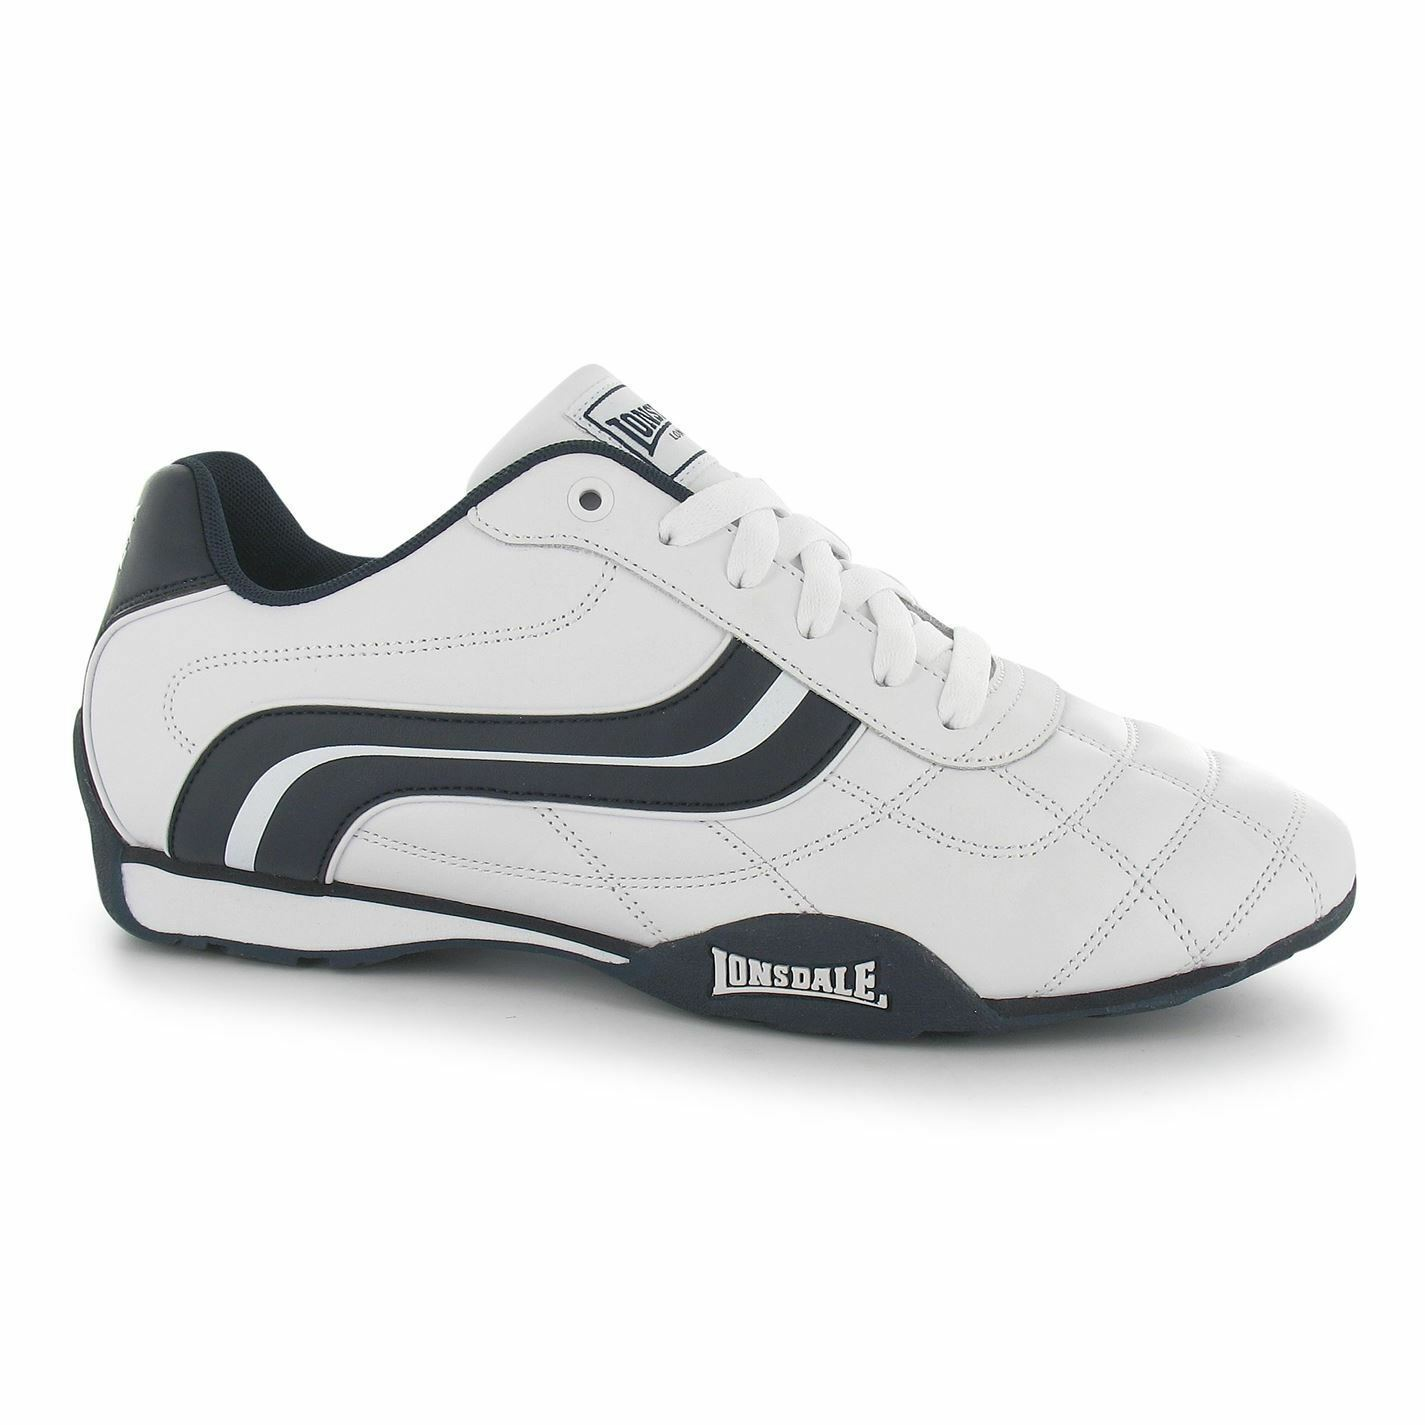 Lonsdale Camden Trainers Mens White/Navy Casual Sneakers Shoes Footwear